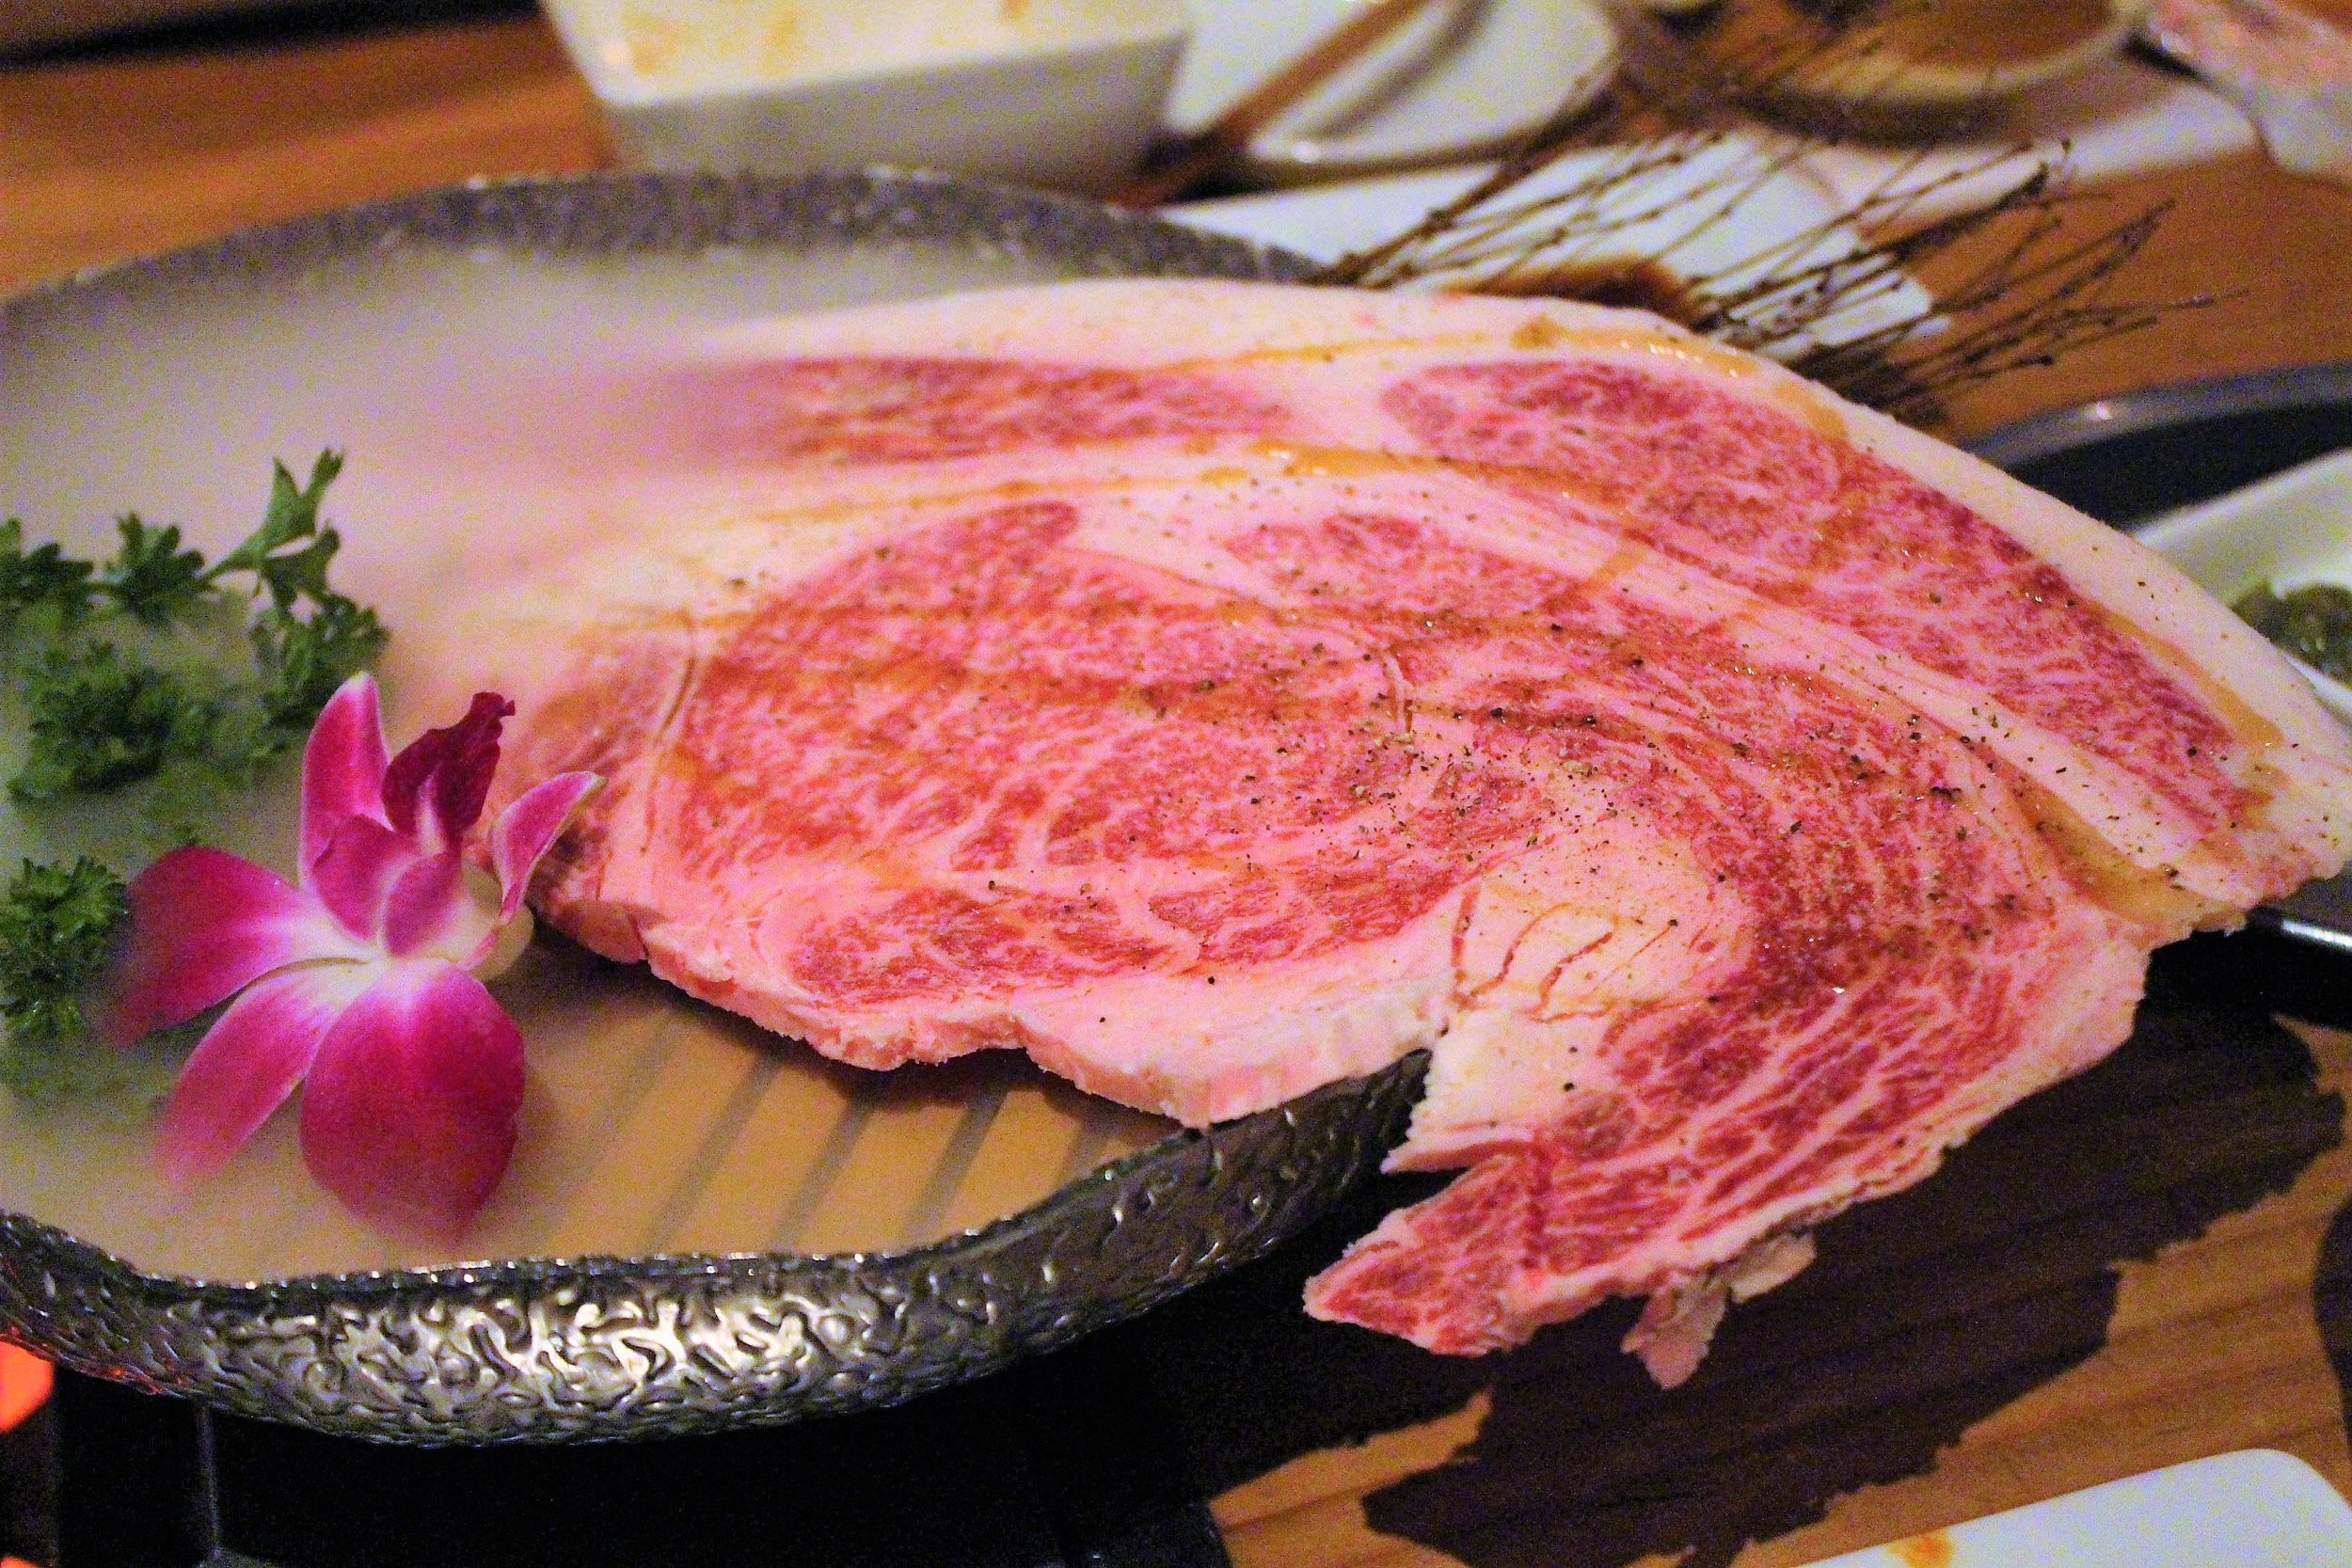 Hamideru Kalbi - Japanese Black Wagyu at Yakiniku Futago in New York City